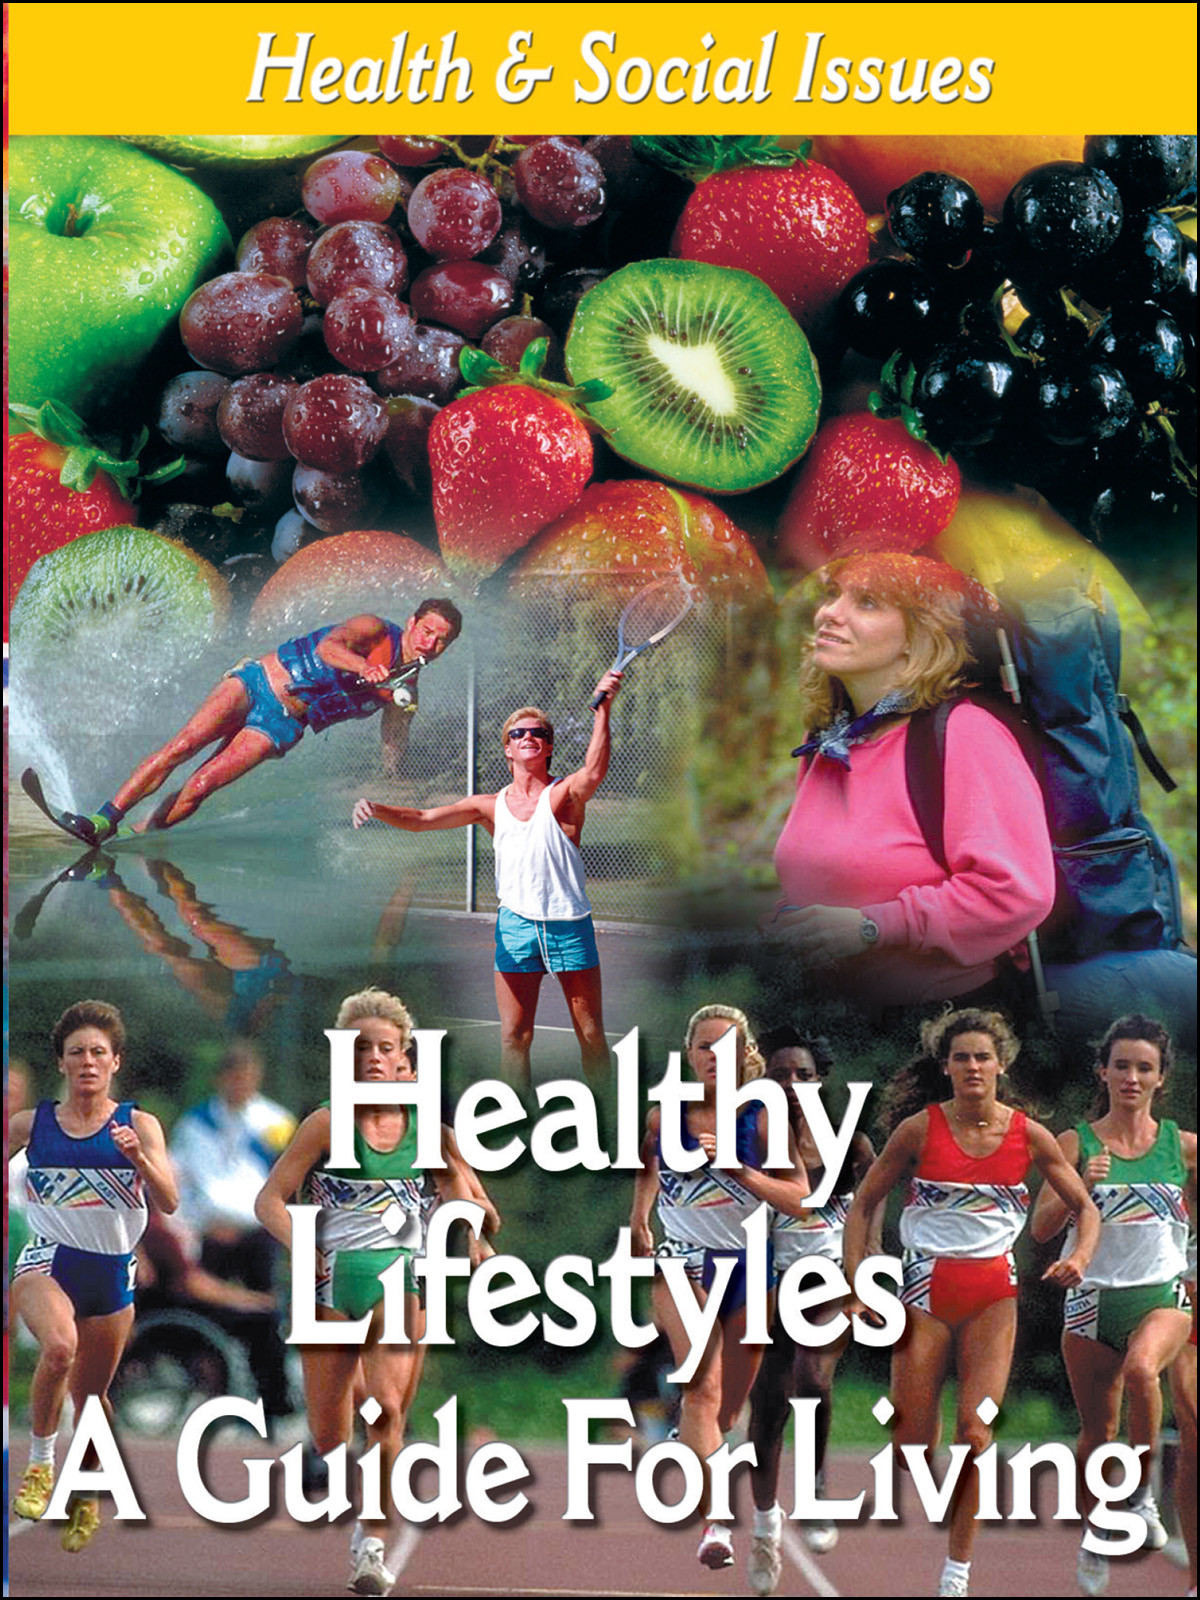 L920 - Living a Healthy Lifestyle A Guide For Living